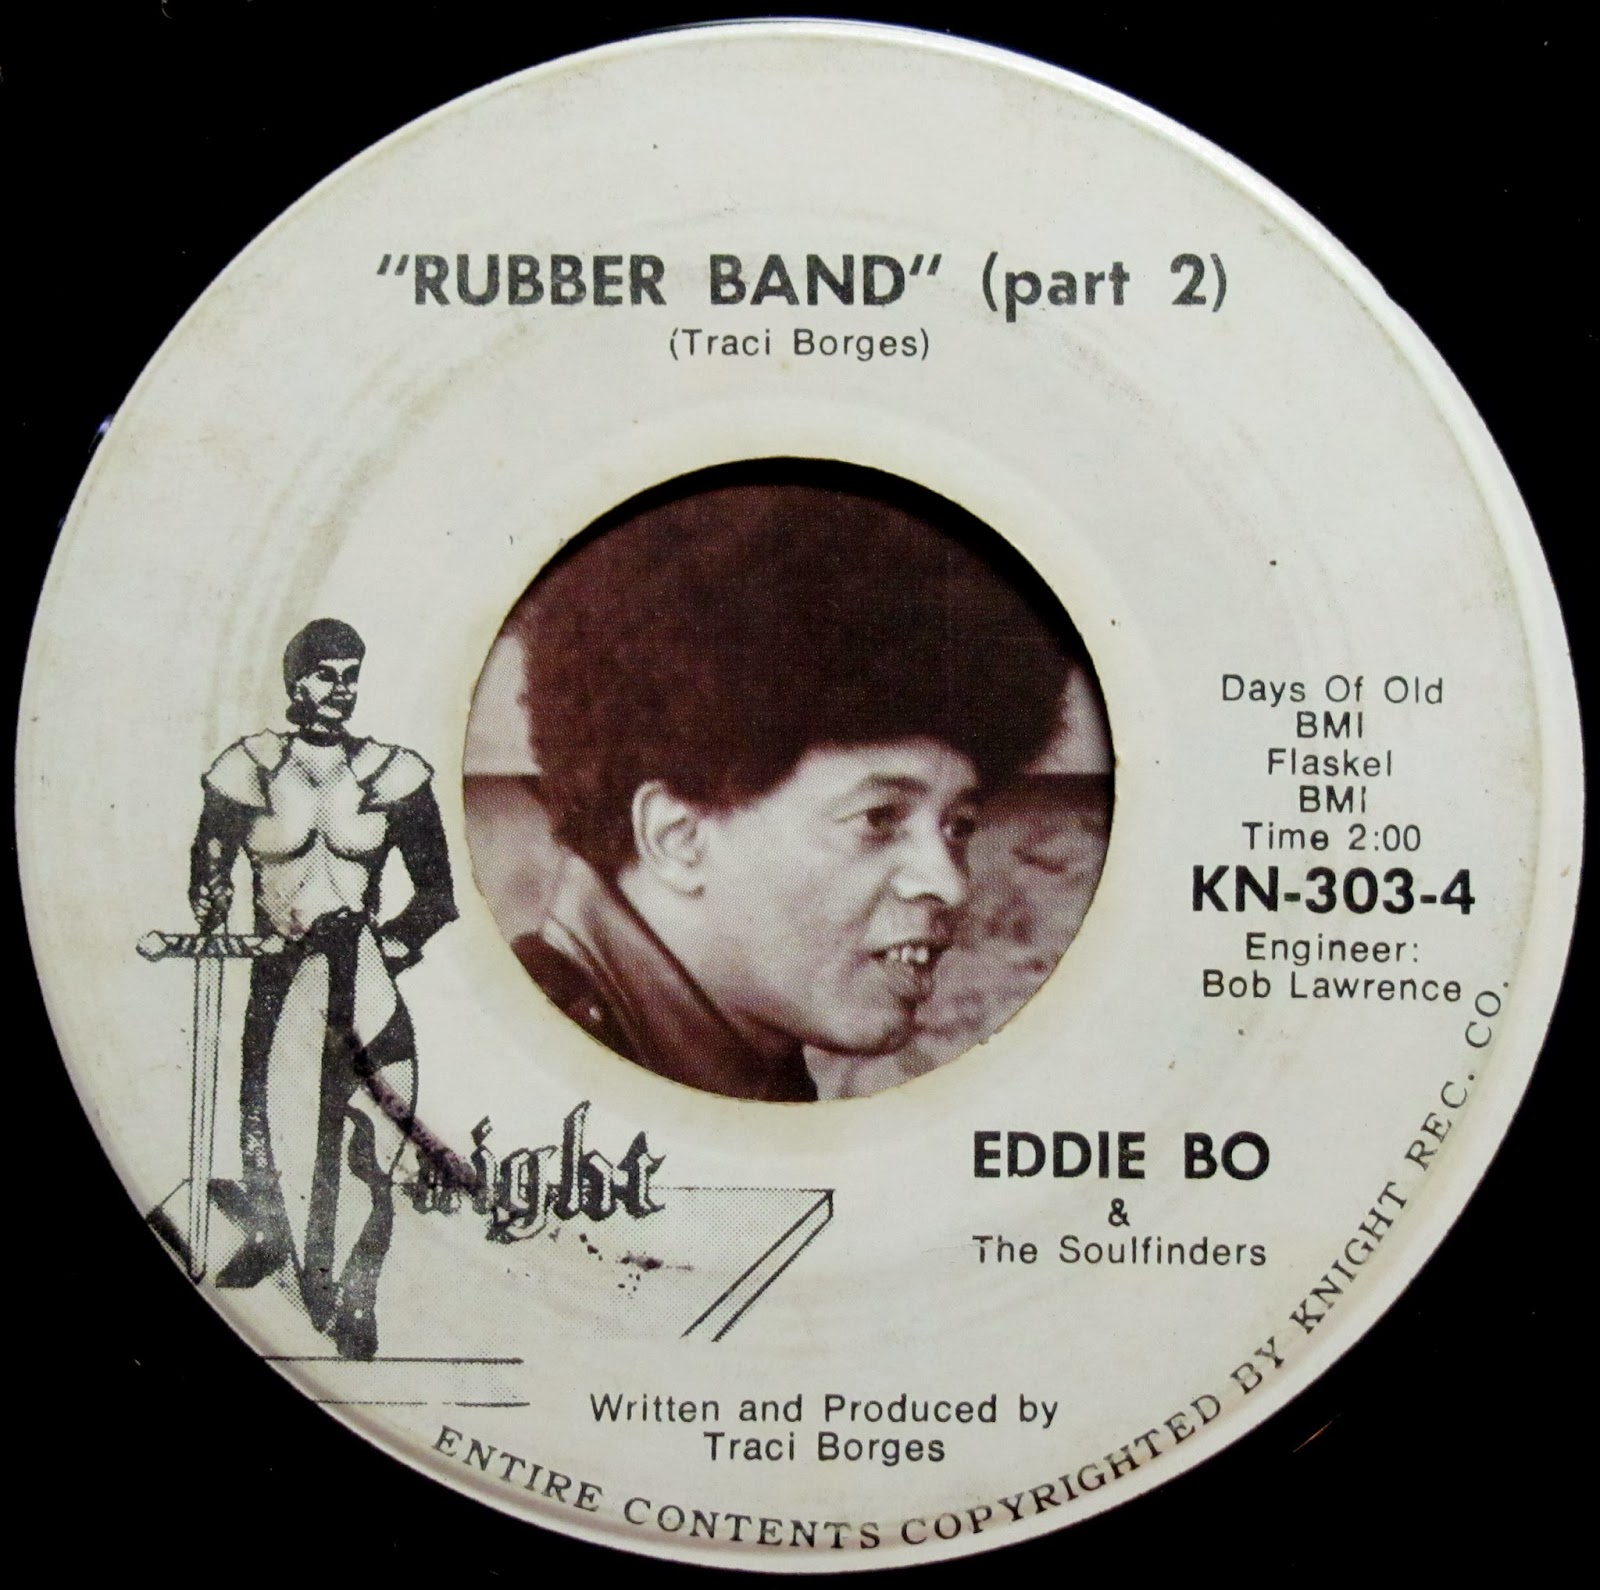 Eddie Bo The Soulfinders The Rubber Band